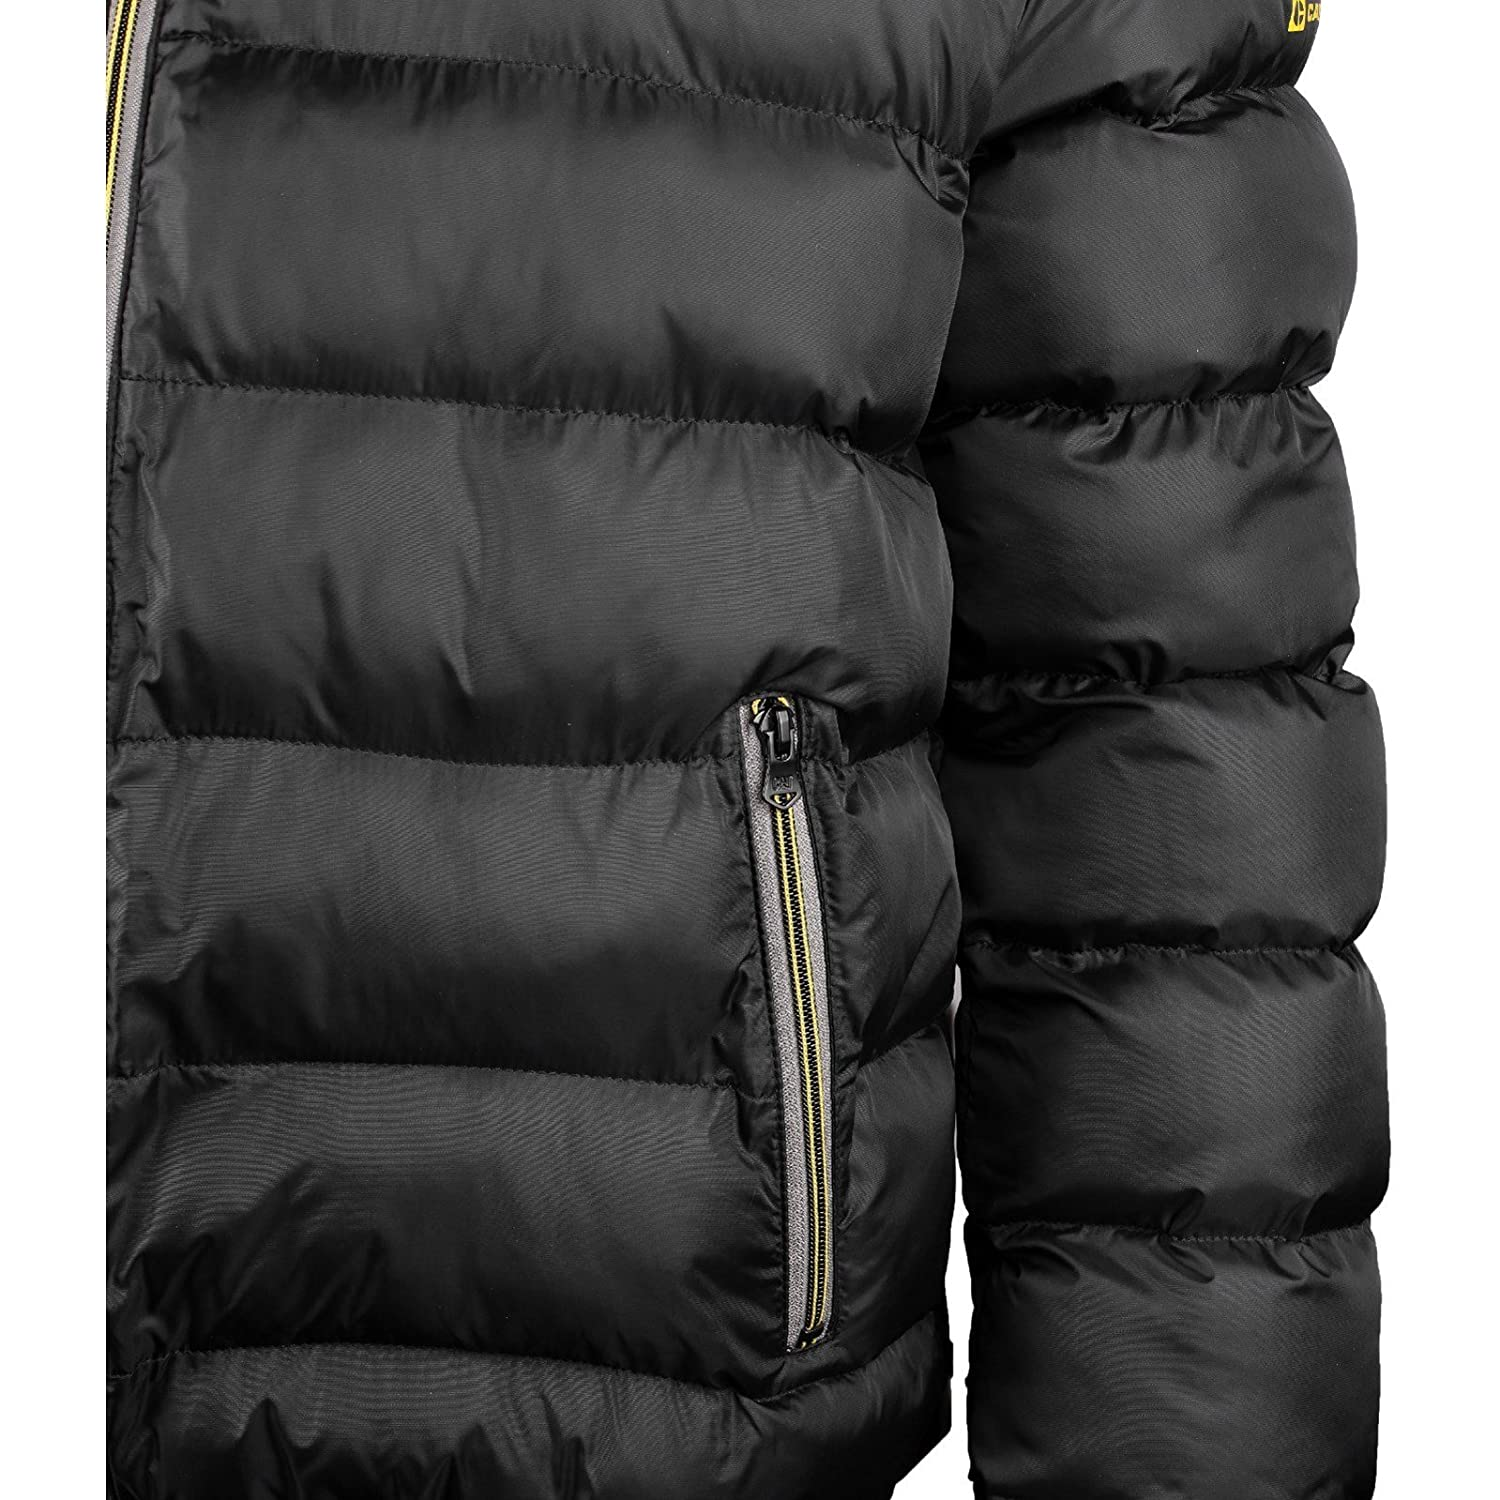 263446f41 CAT Lifestyle WILLIAMSBURG Mens Quilted Jacket Black Extra Large ...